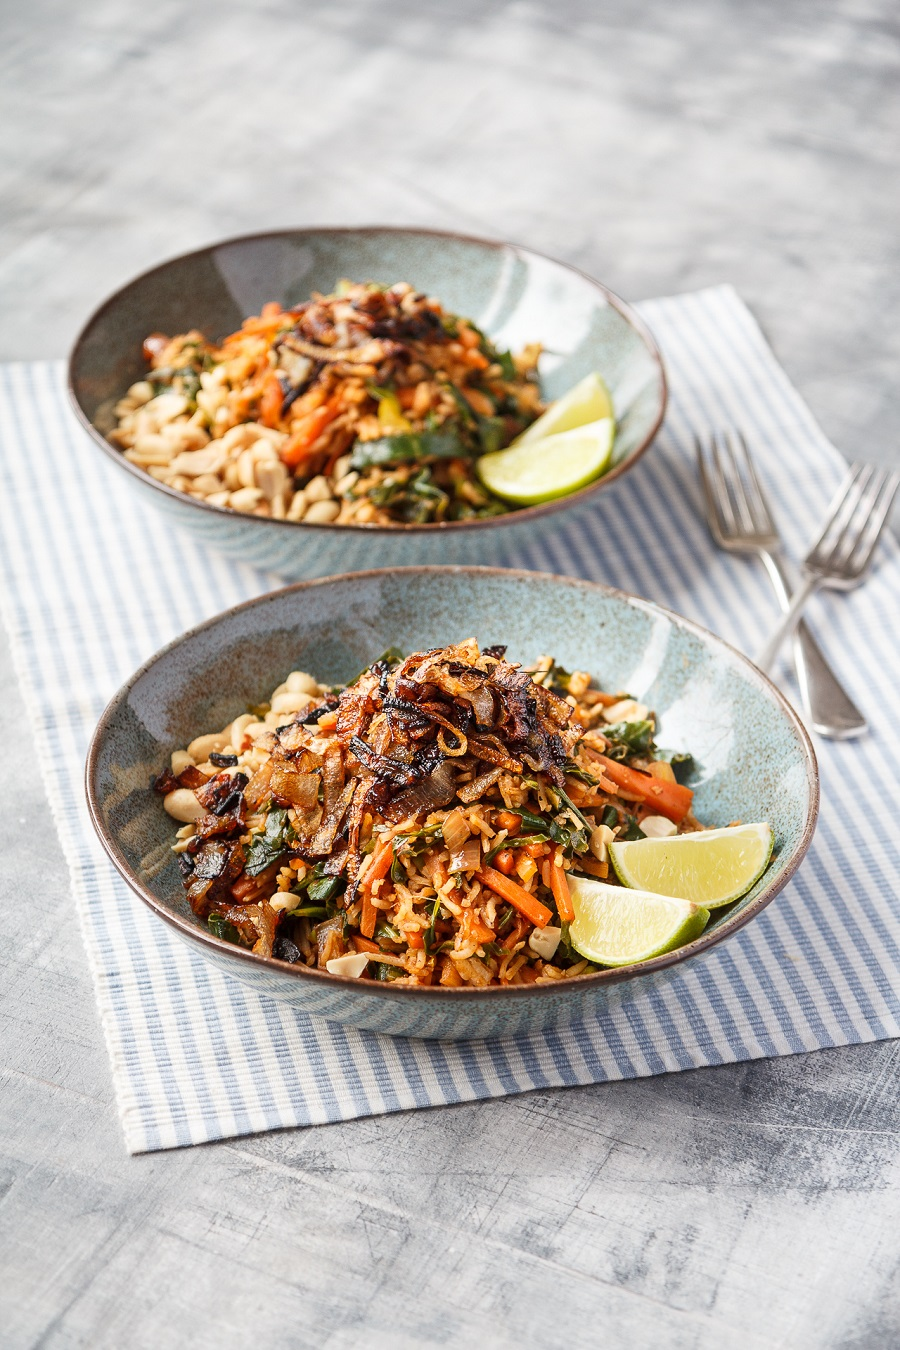 Vegan Shallot And Vegetable Nasi Goreng